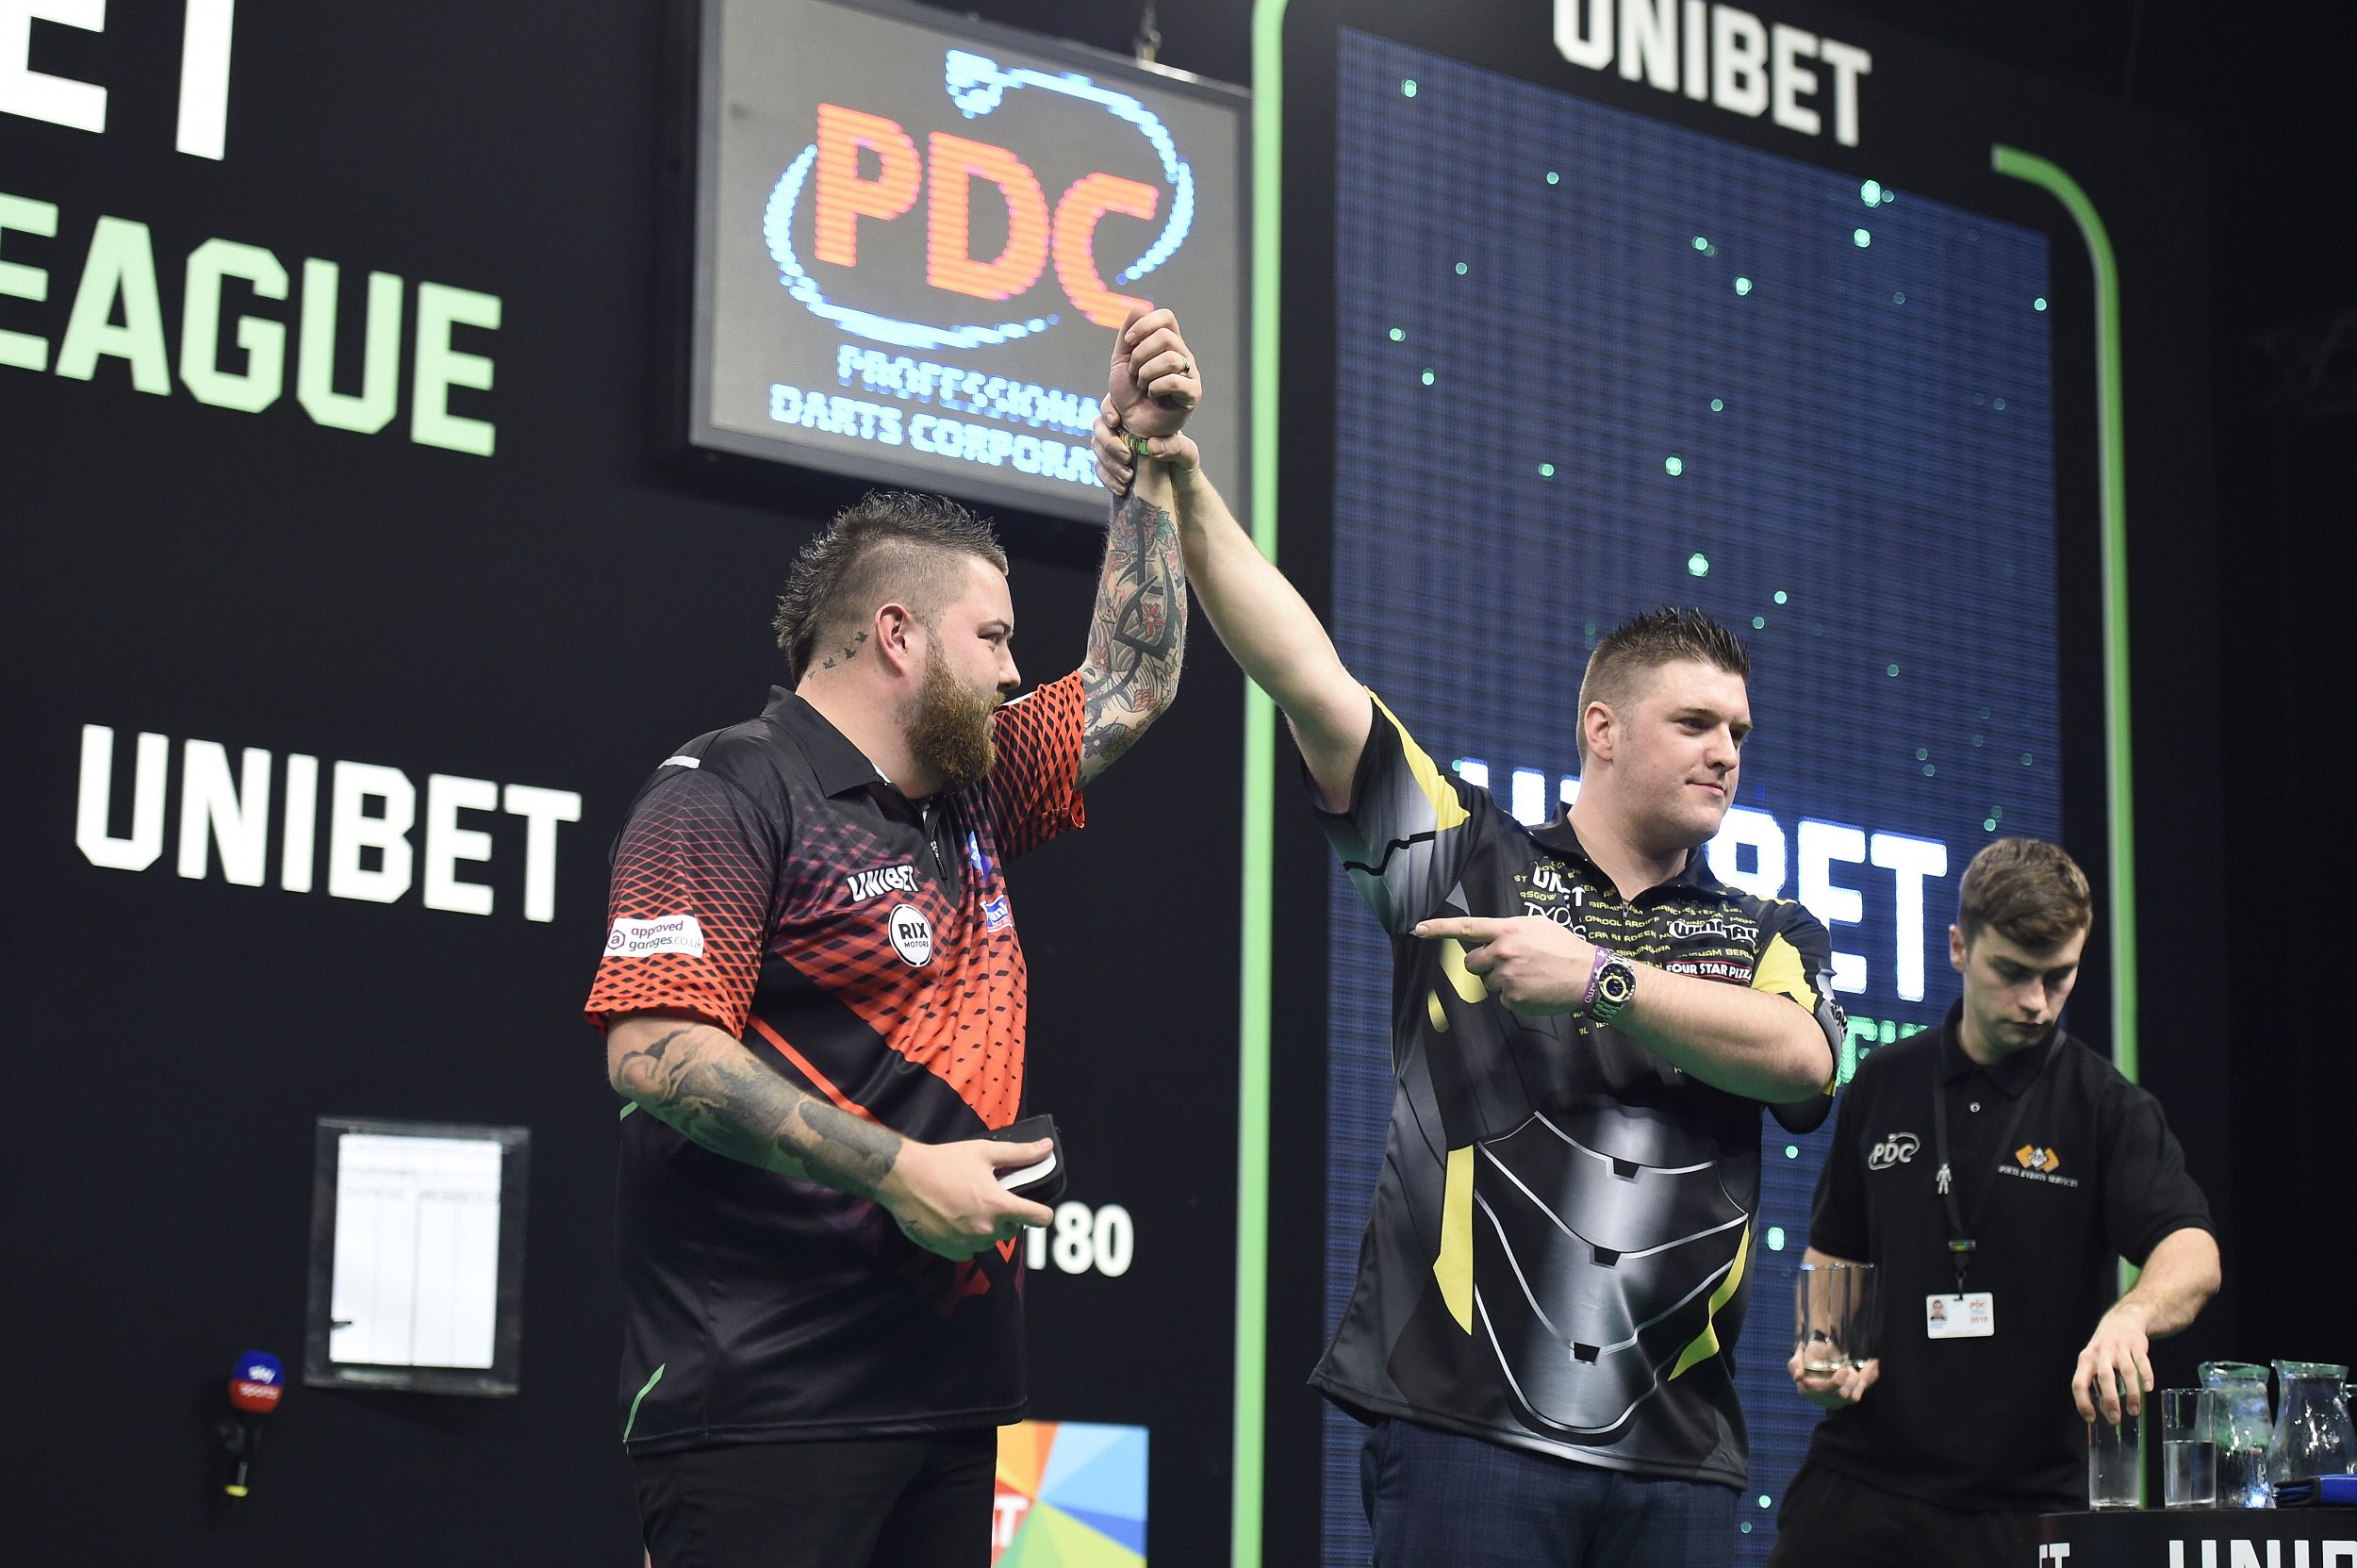 21/2/19: Daryl Gurney in action against Michael Smith in action during the Unibet Premier League Darts match at the 3Arena, Dublin. Picture: Michael Cooper